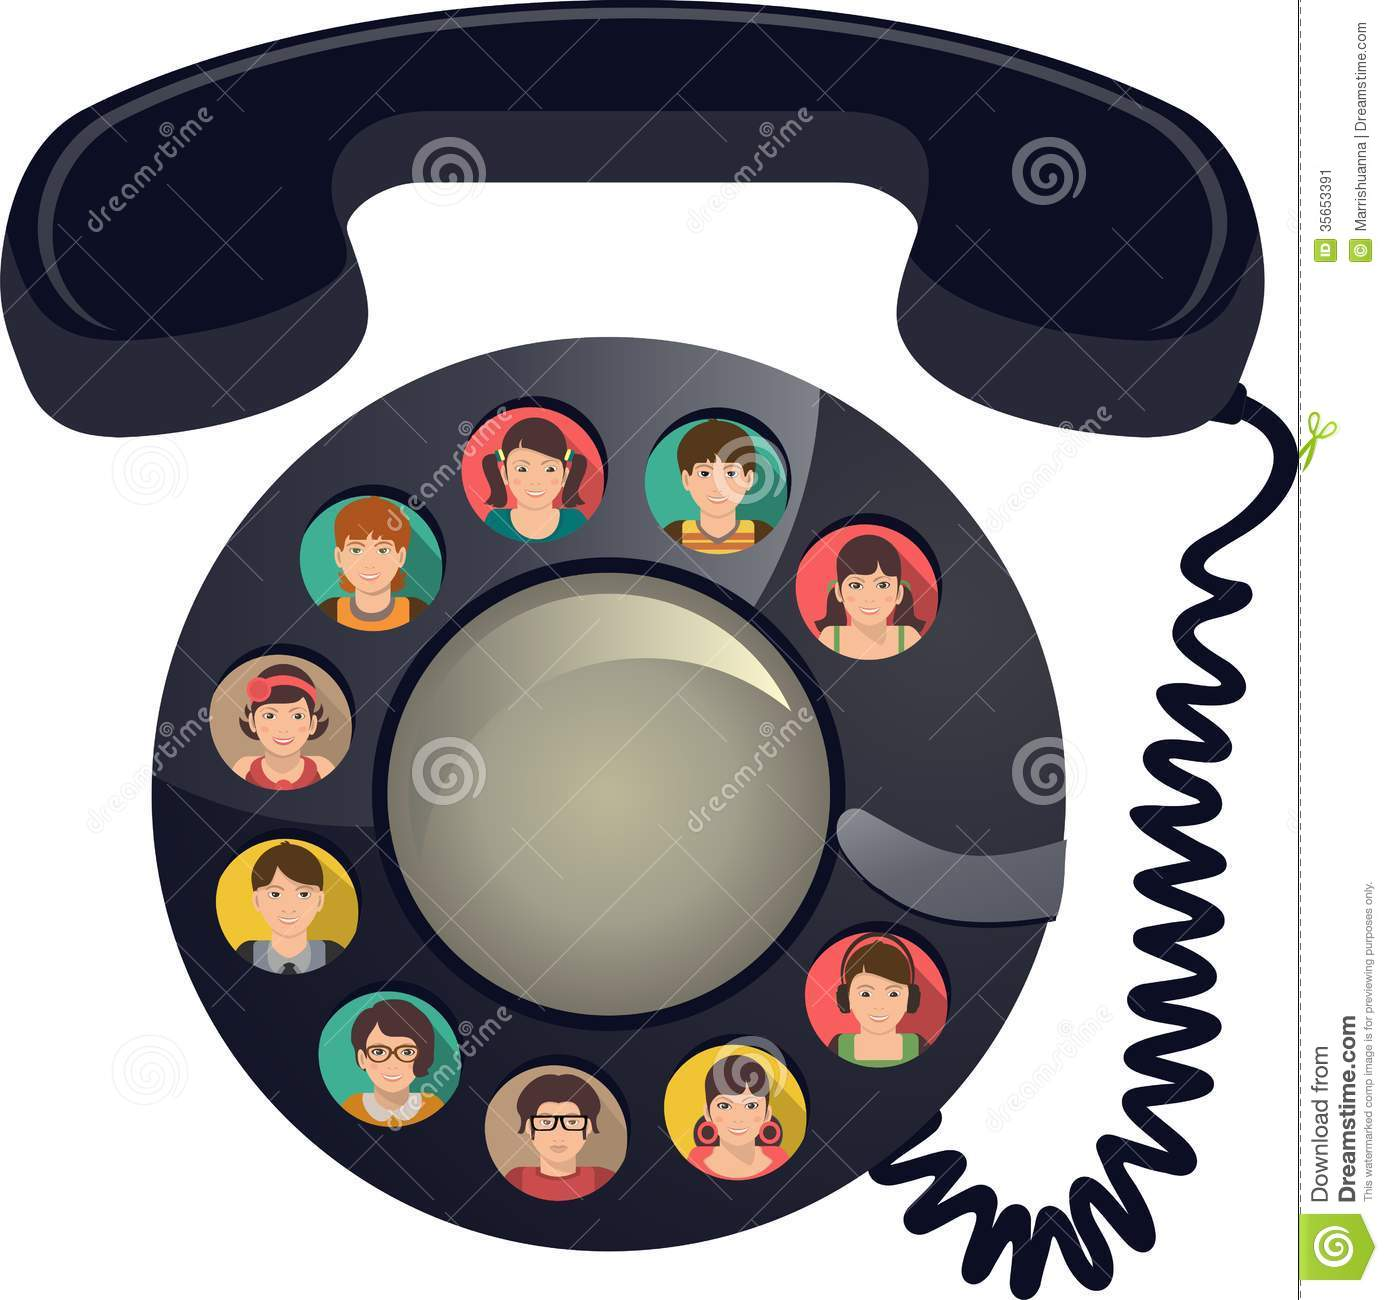 Conference call clipart 1 » Clipart Station.